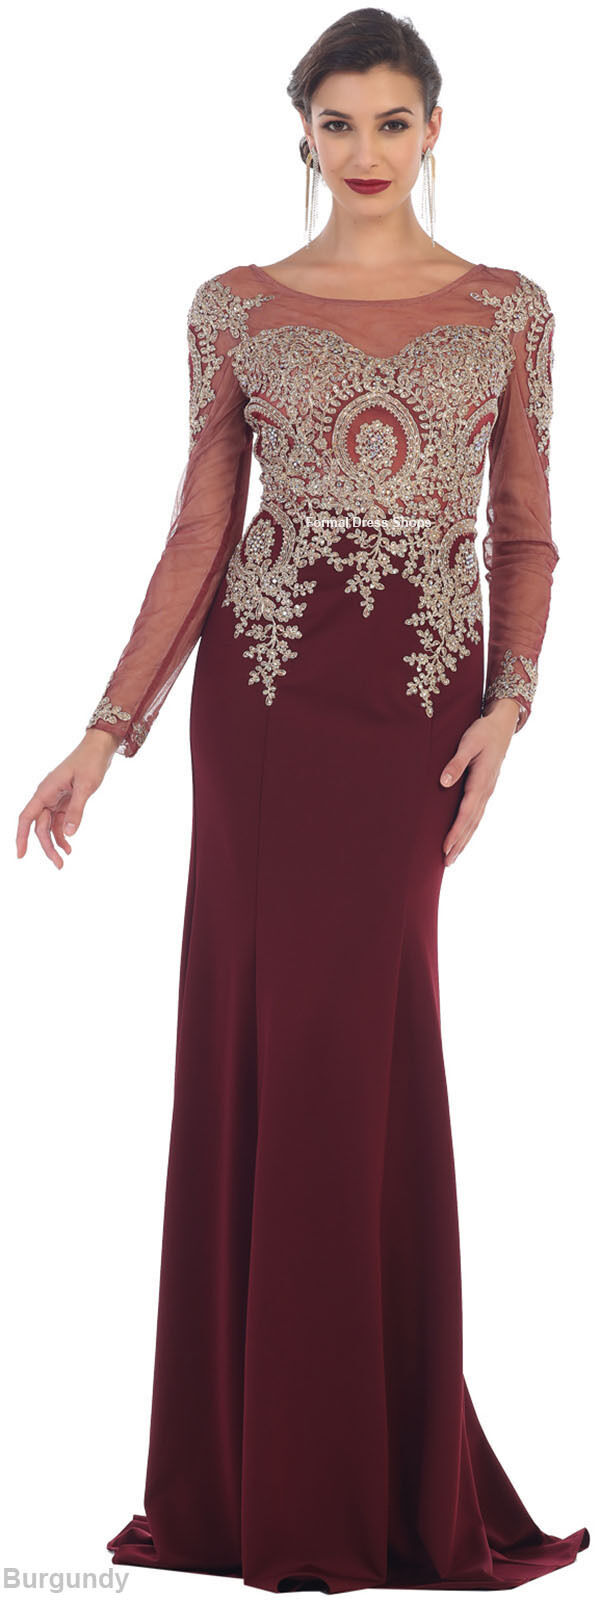 Modern Formal Attire: FORMAL PROM DRESSES STRETCHY EVENING MODERN MOTHER Of THE